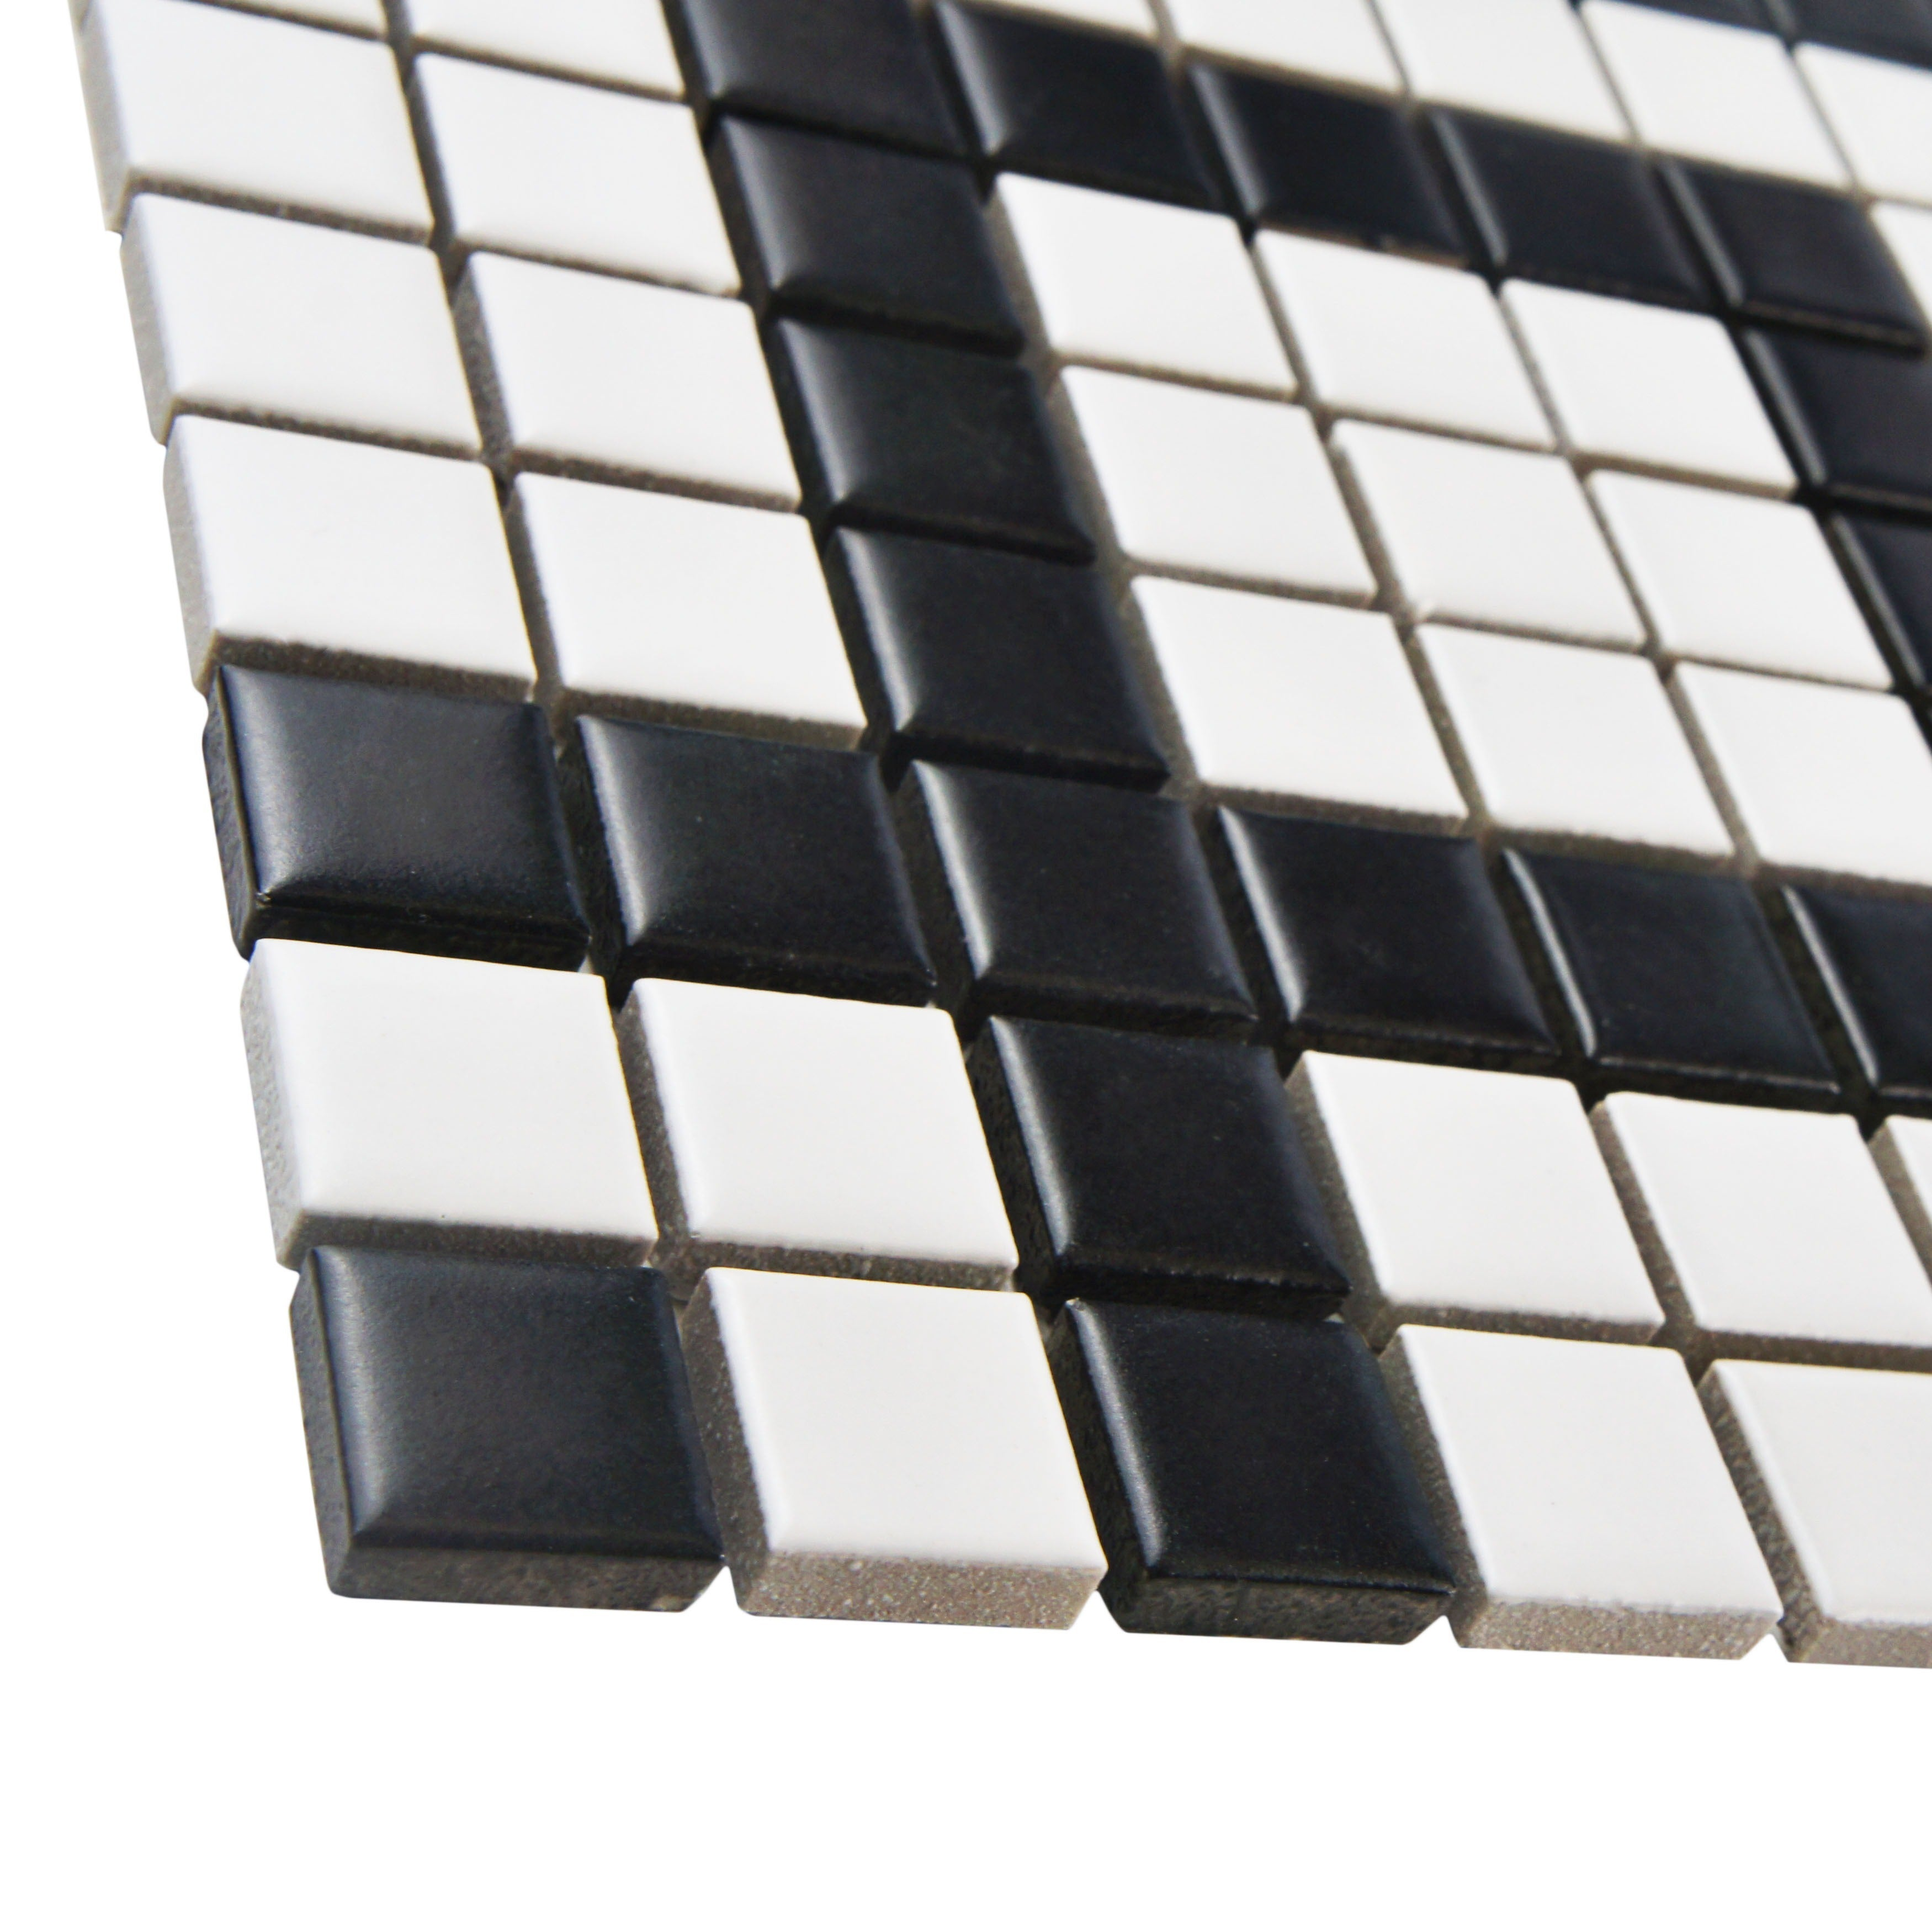 Shop Somertile 8x8 Inch Victorian Greek Key Matte White And Black Corner Porcelain Mosaic Floor And Wall Tile 4 Tiles Free Shipping On Orders Over 45